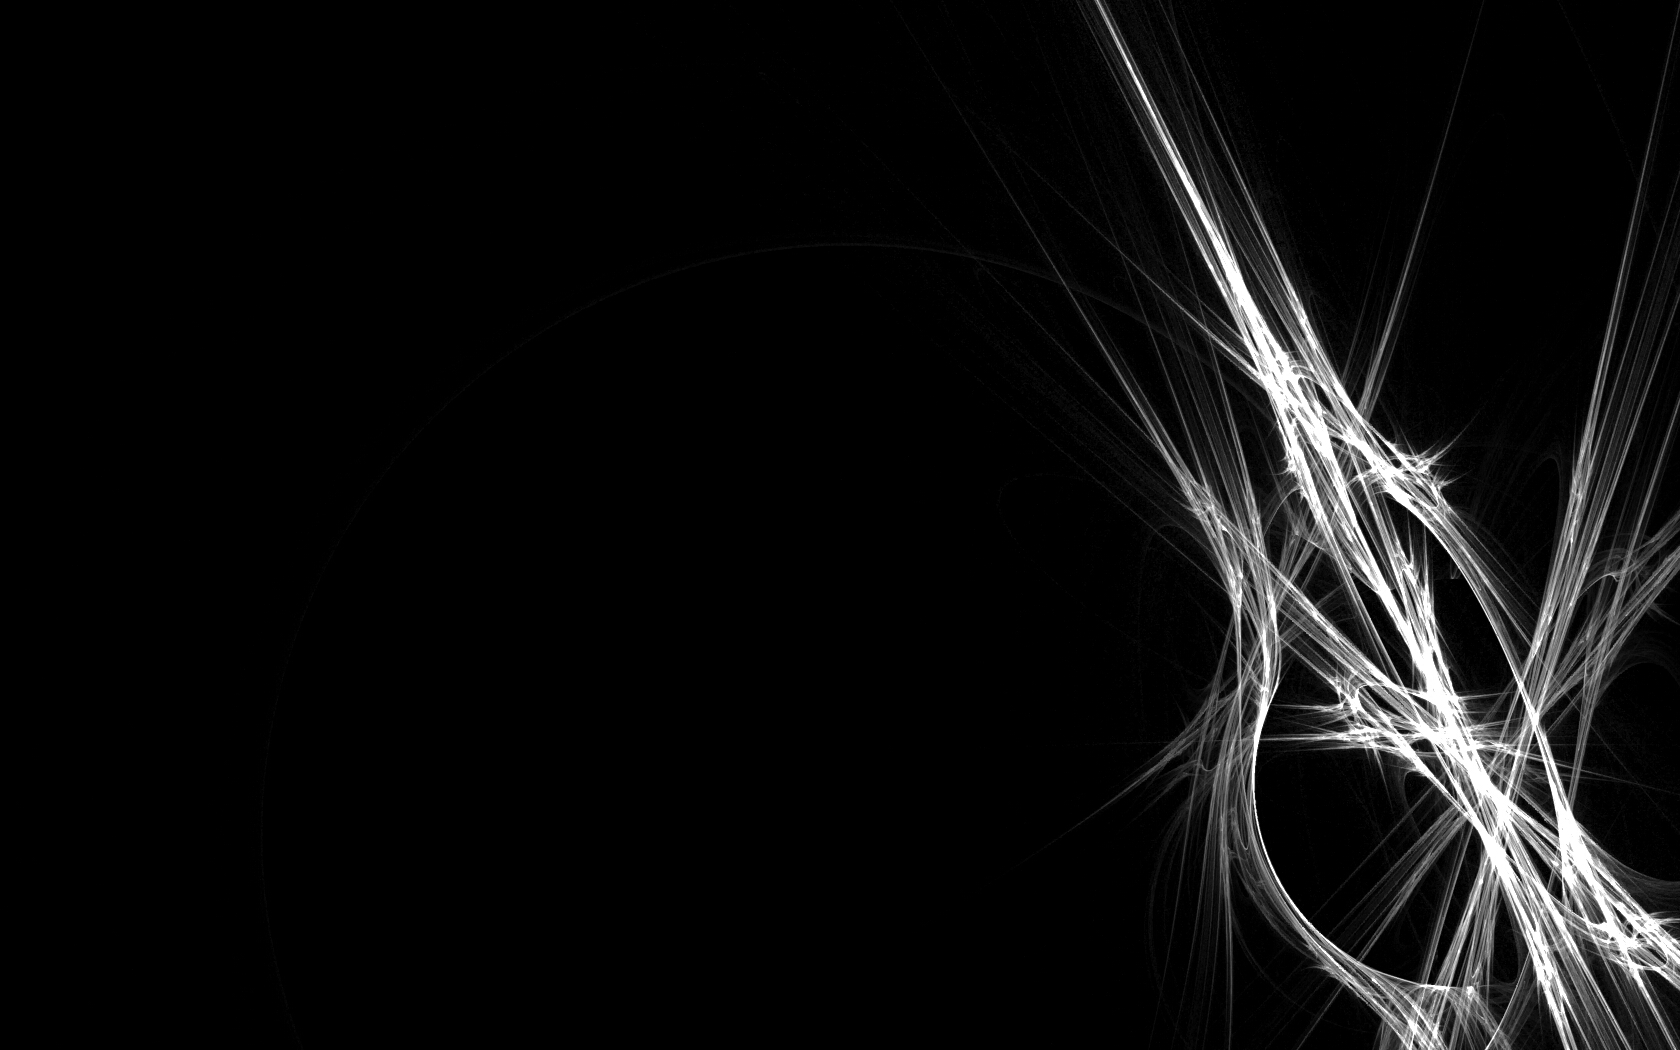 Black And White Background 1680x1050